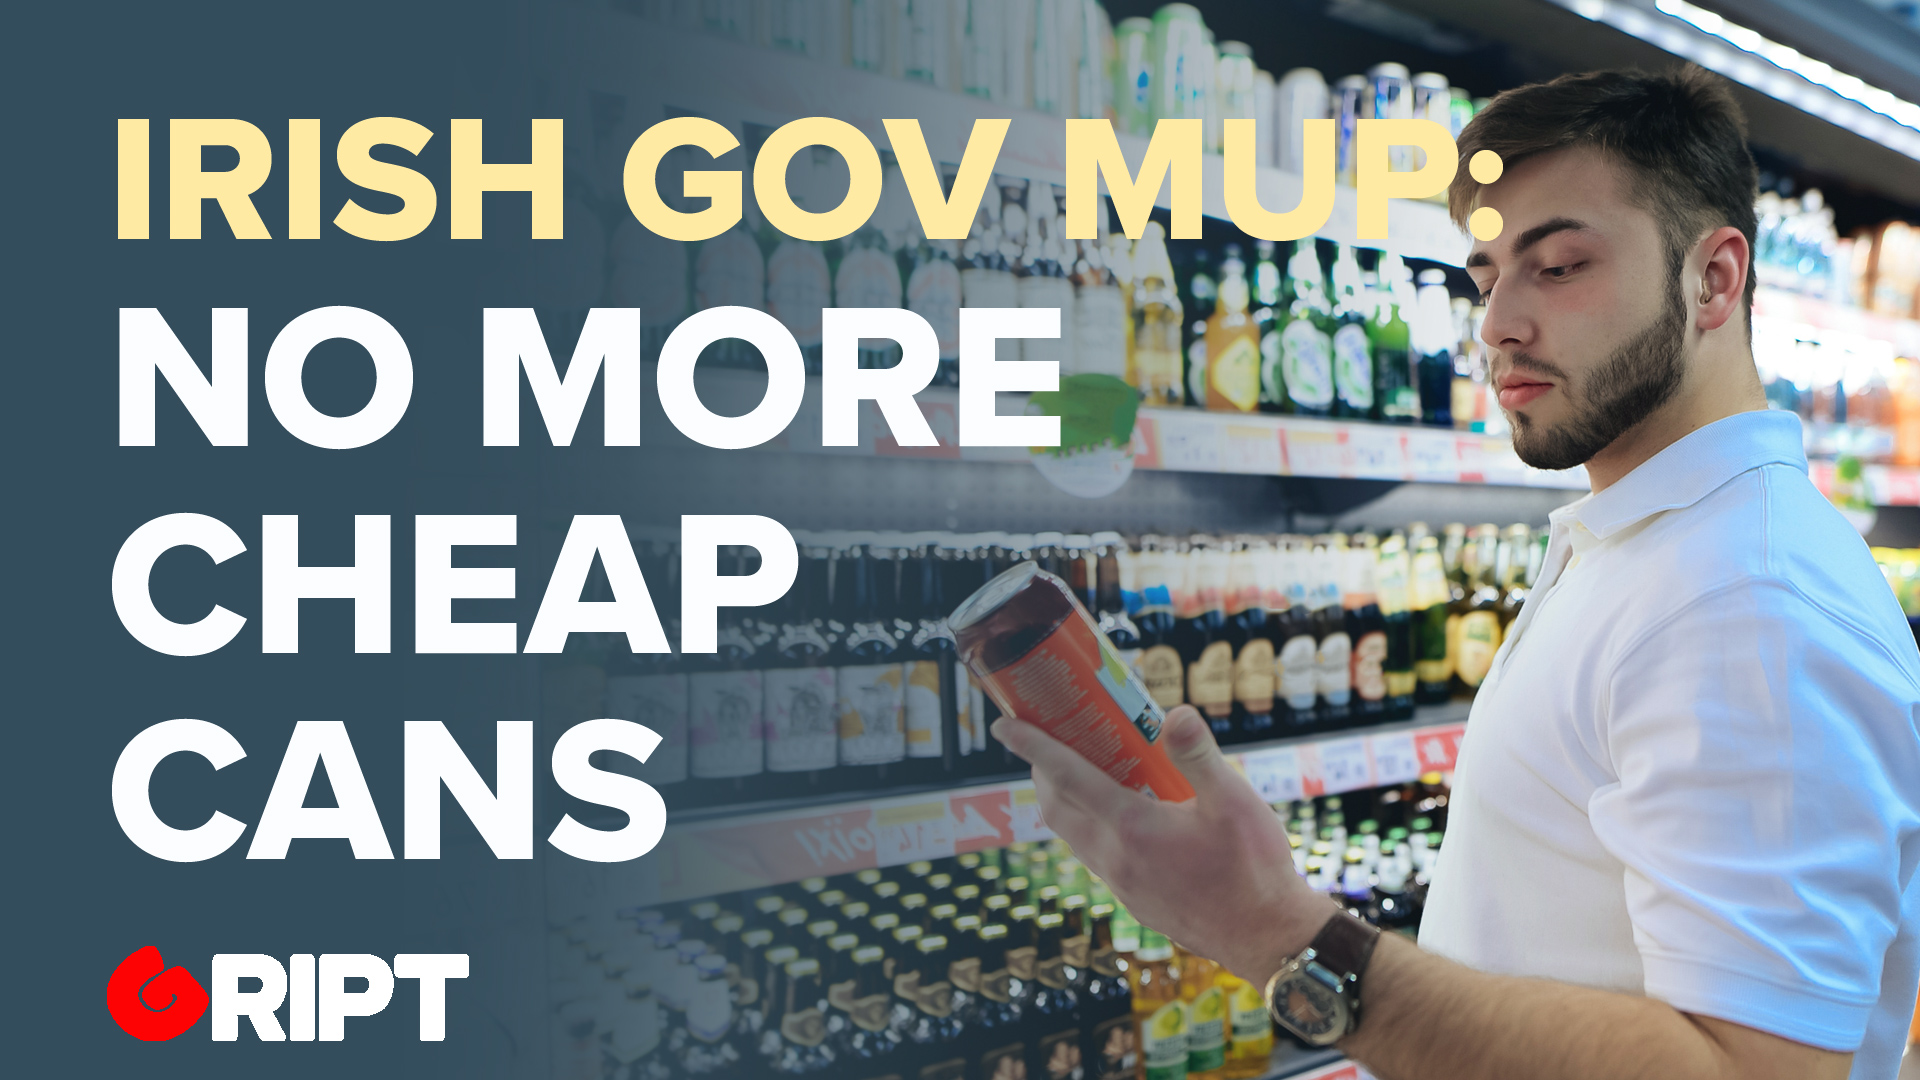 Irish Government Wants Minimum Alcohol Pricing